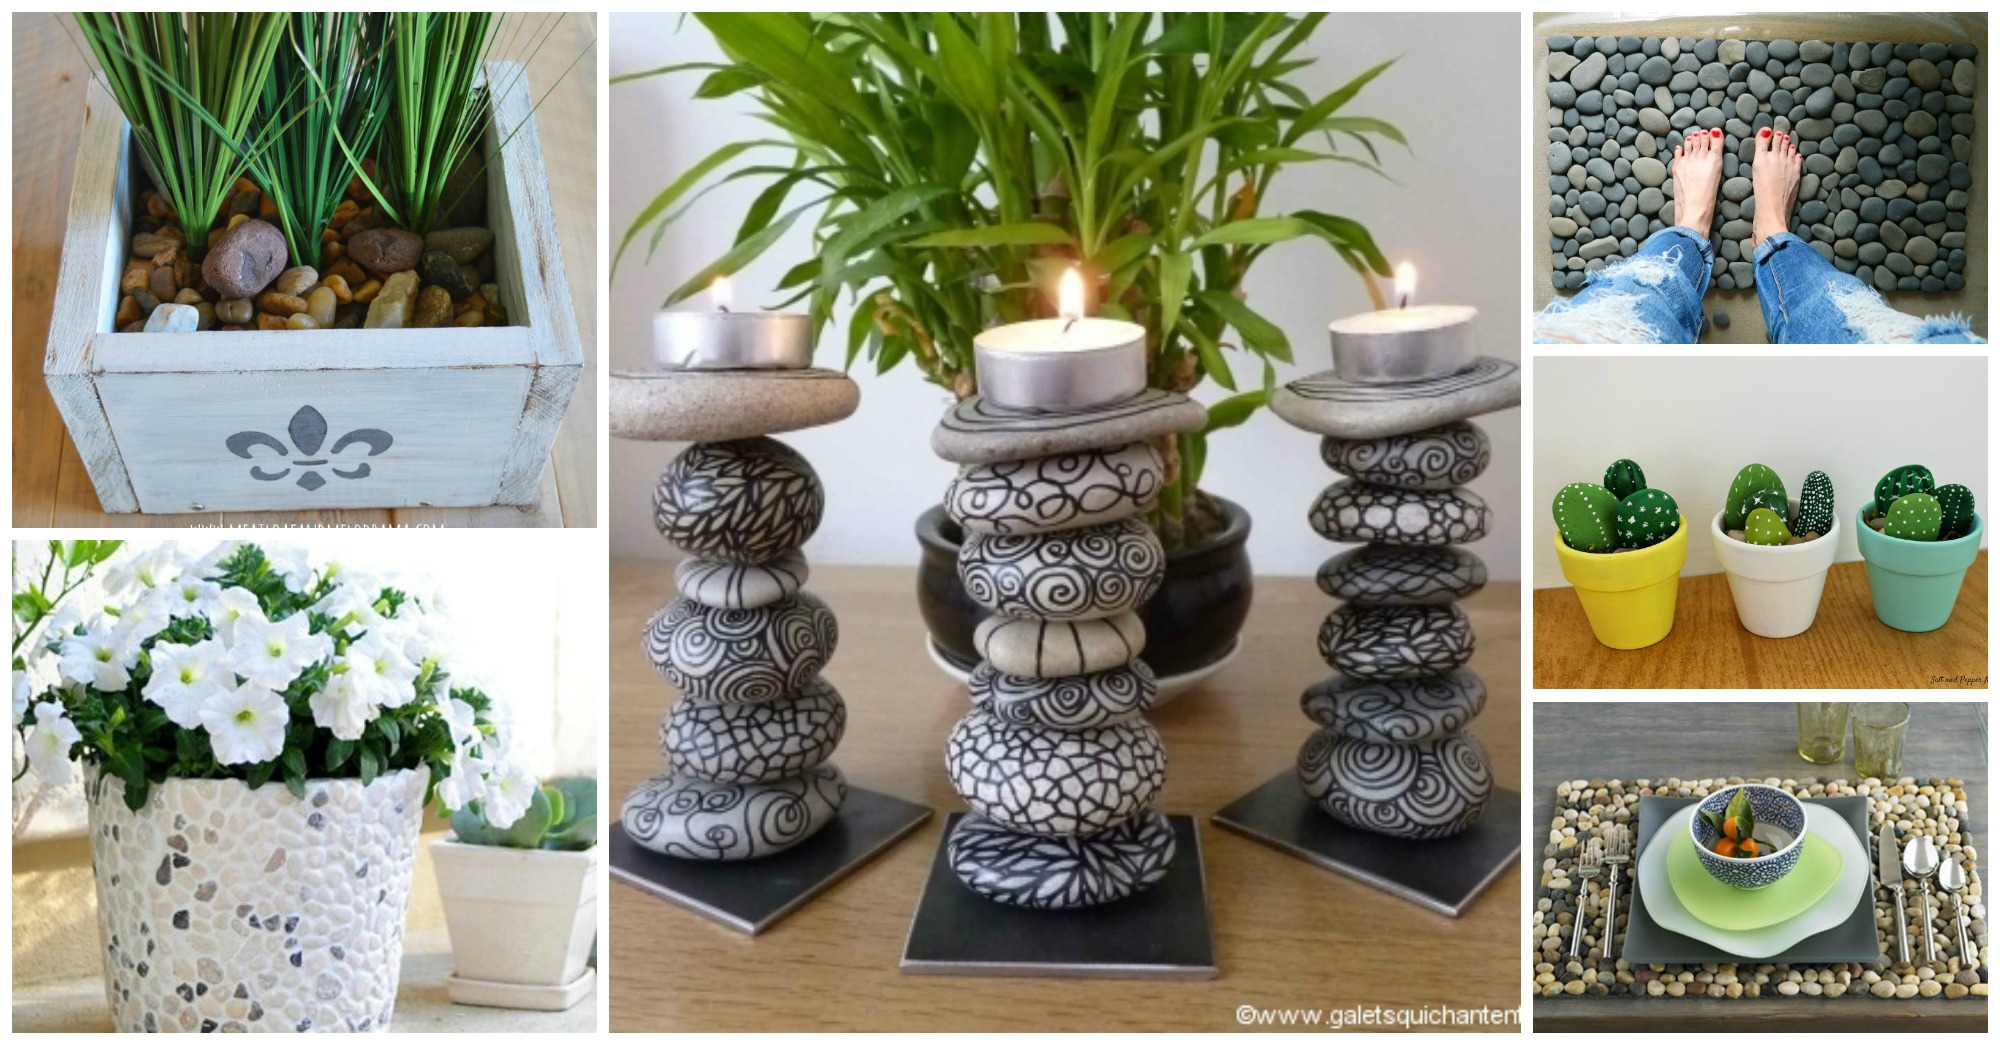 20 Diy Decorations To Make With Pebbles